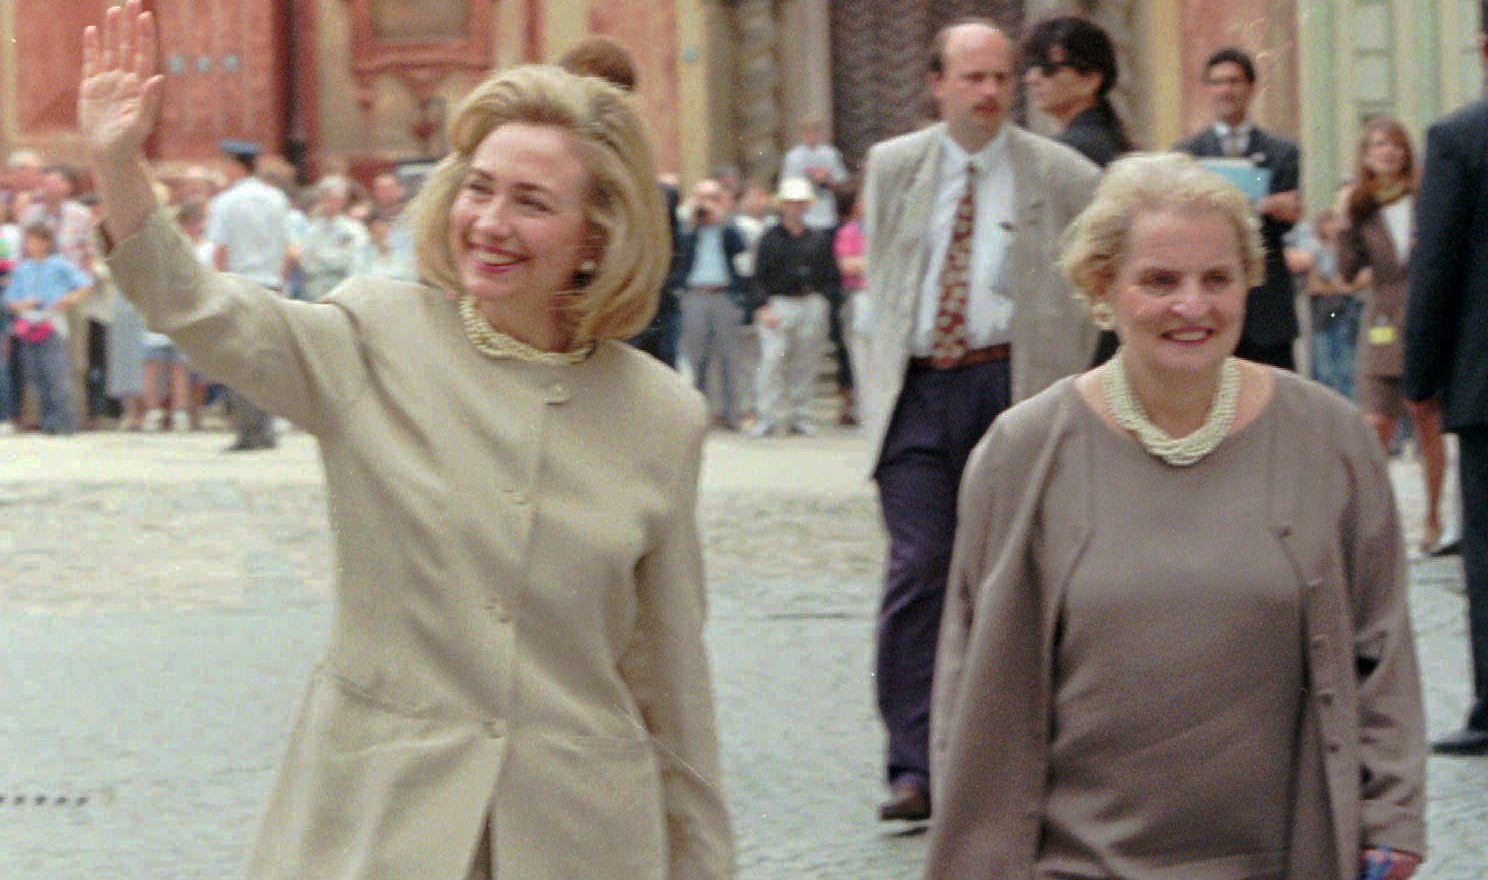 Cropped: First lady Hillary Rodham Clinton, left, is accompanied by Madeleine Albright, U.S Ambassador to the United Nations, right, and waves to Prague citizens on her tour at the Castle of Prague Friday July 5, 1996. Mrs Clinton leaves the Czech Republic Saturday for Slovakia and Hungary